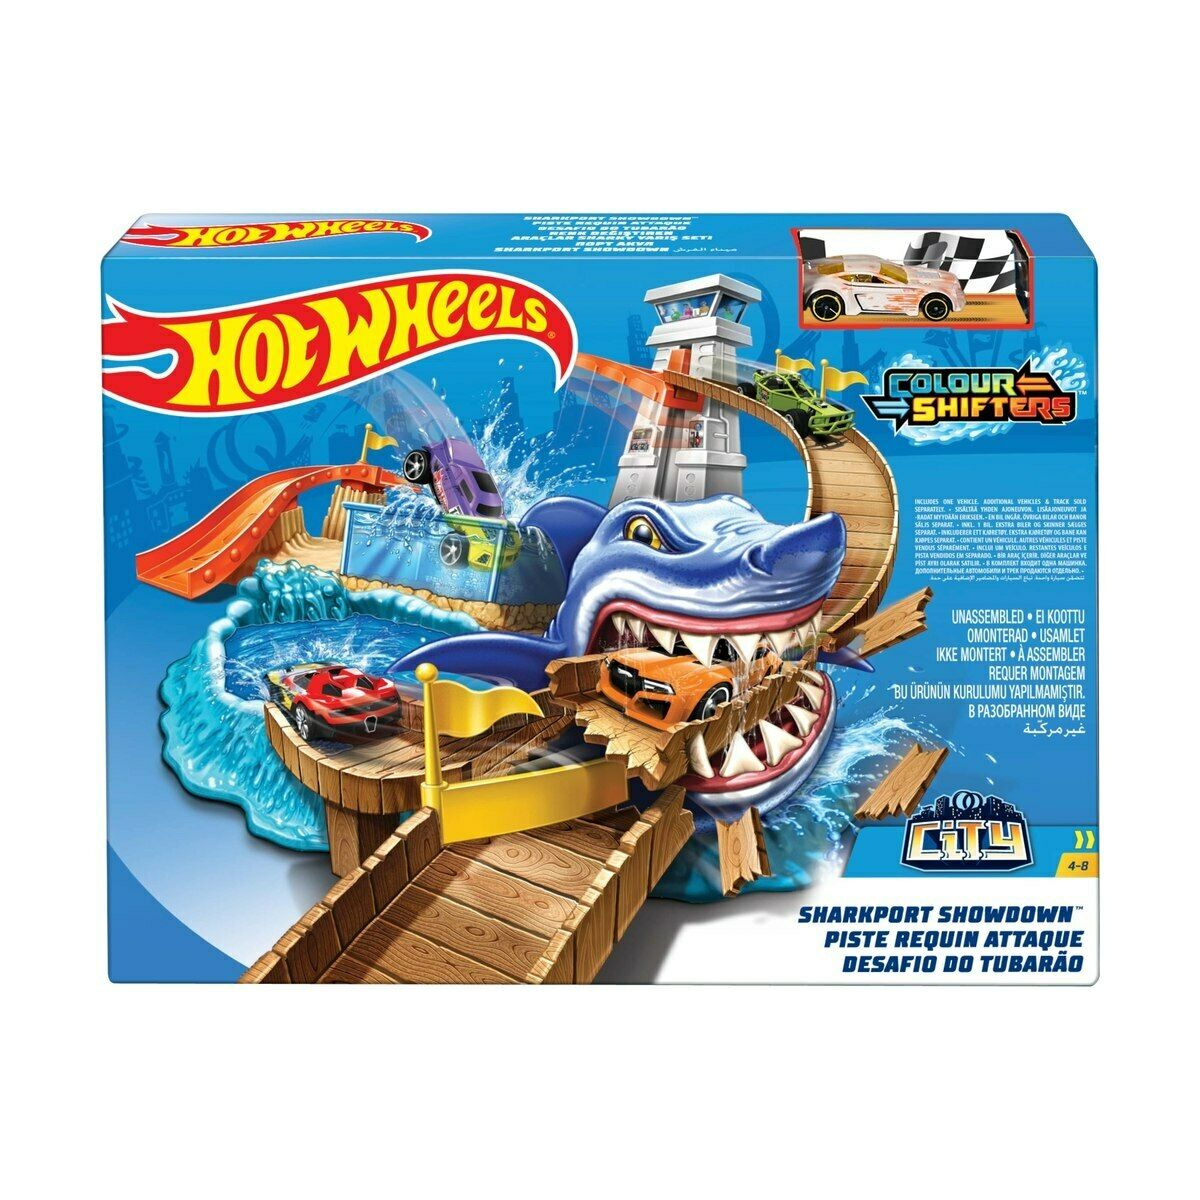 NEW Hot Wheels Colour Shifters Sharkport Showdown Vehicle Playset Birthday Gift